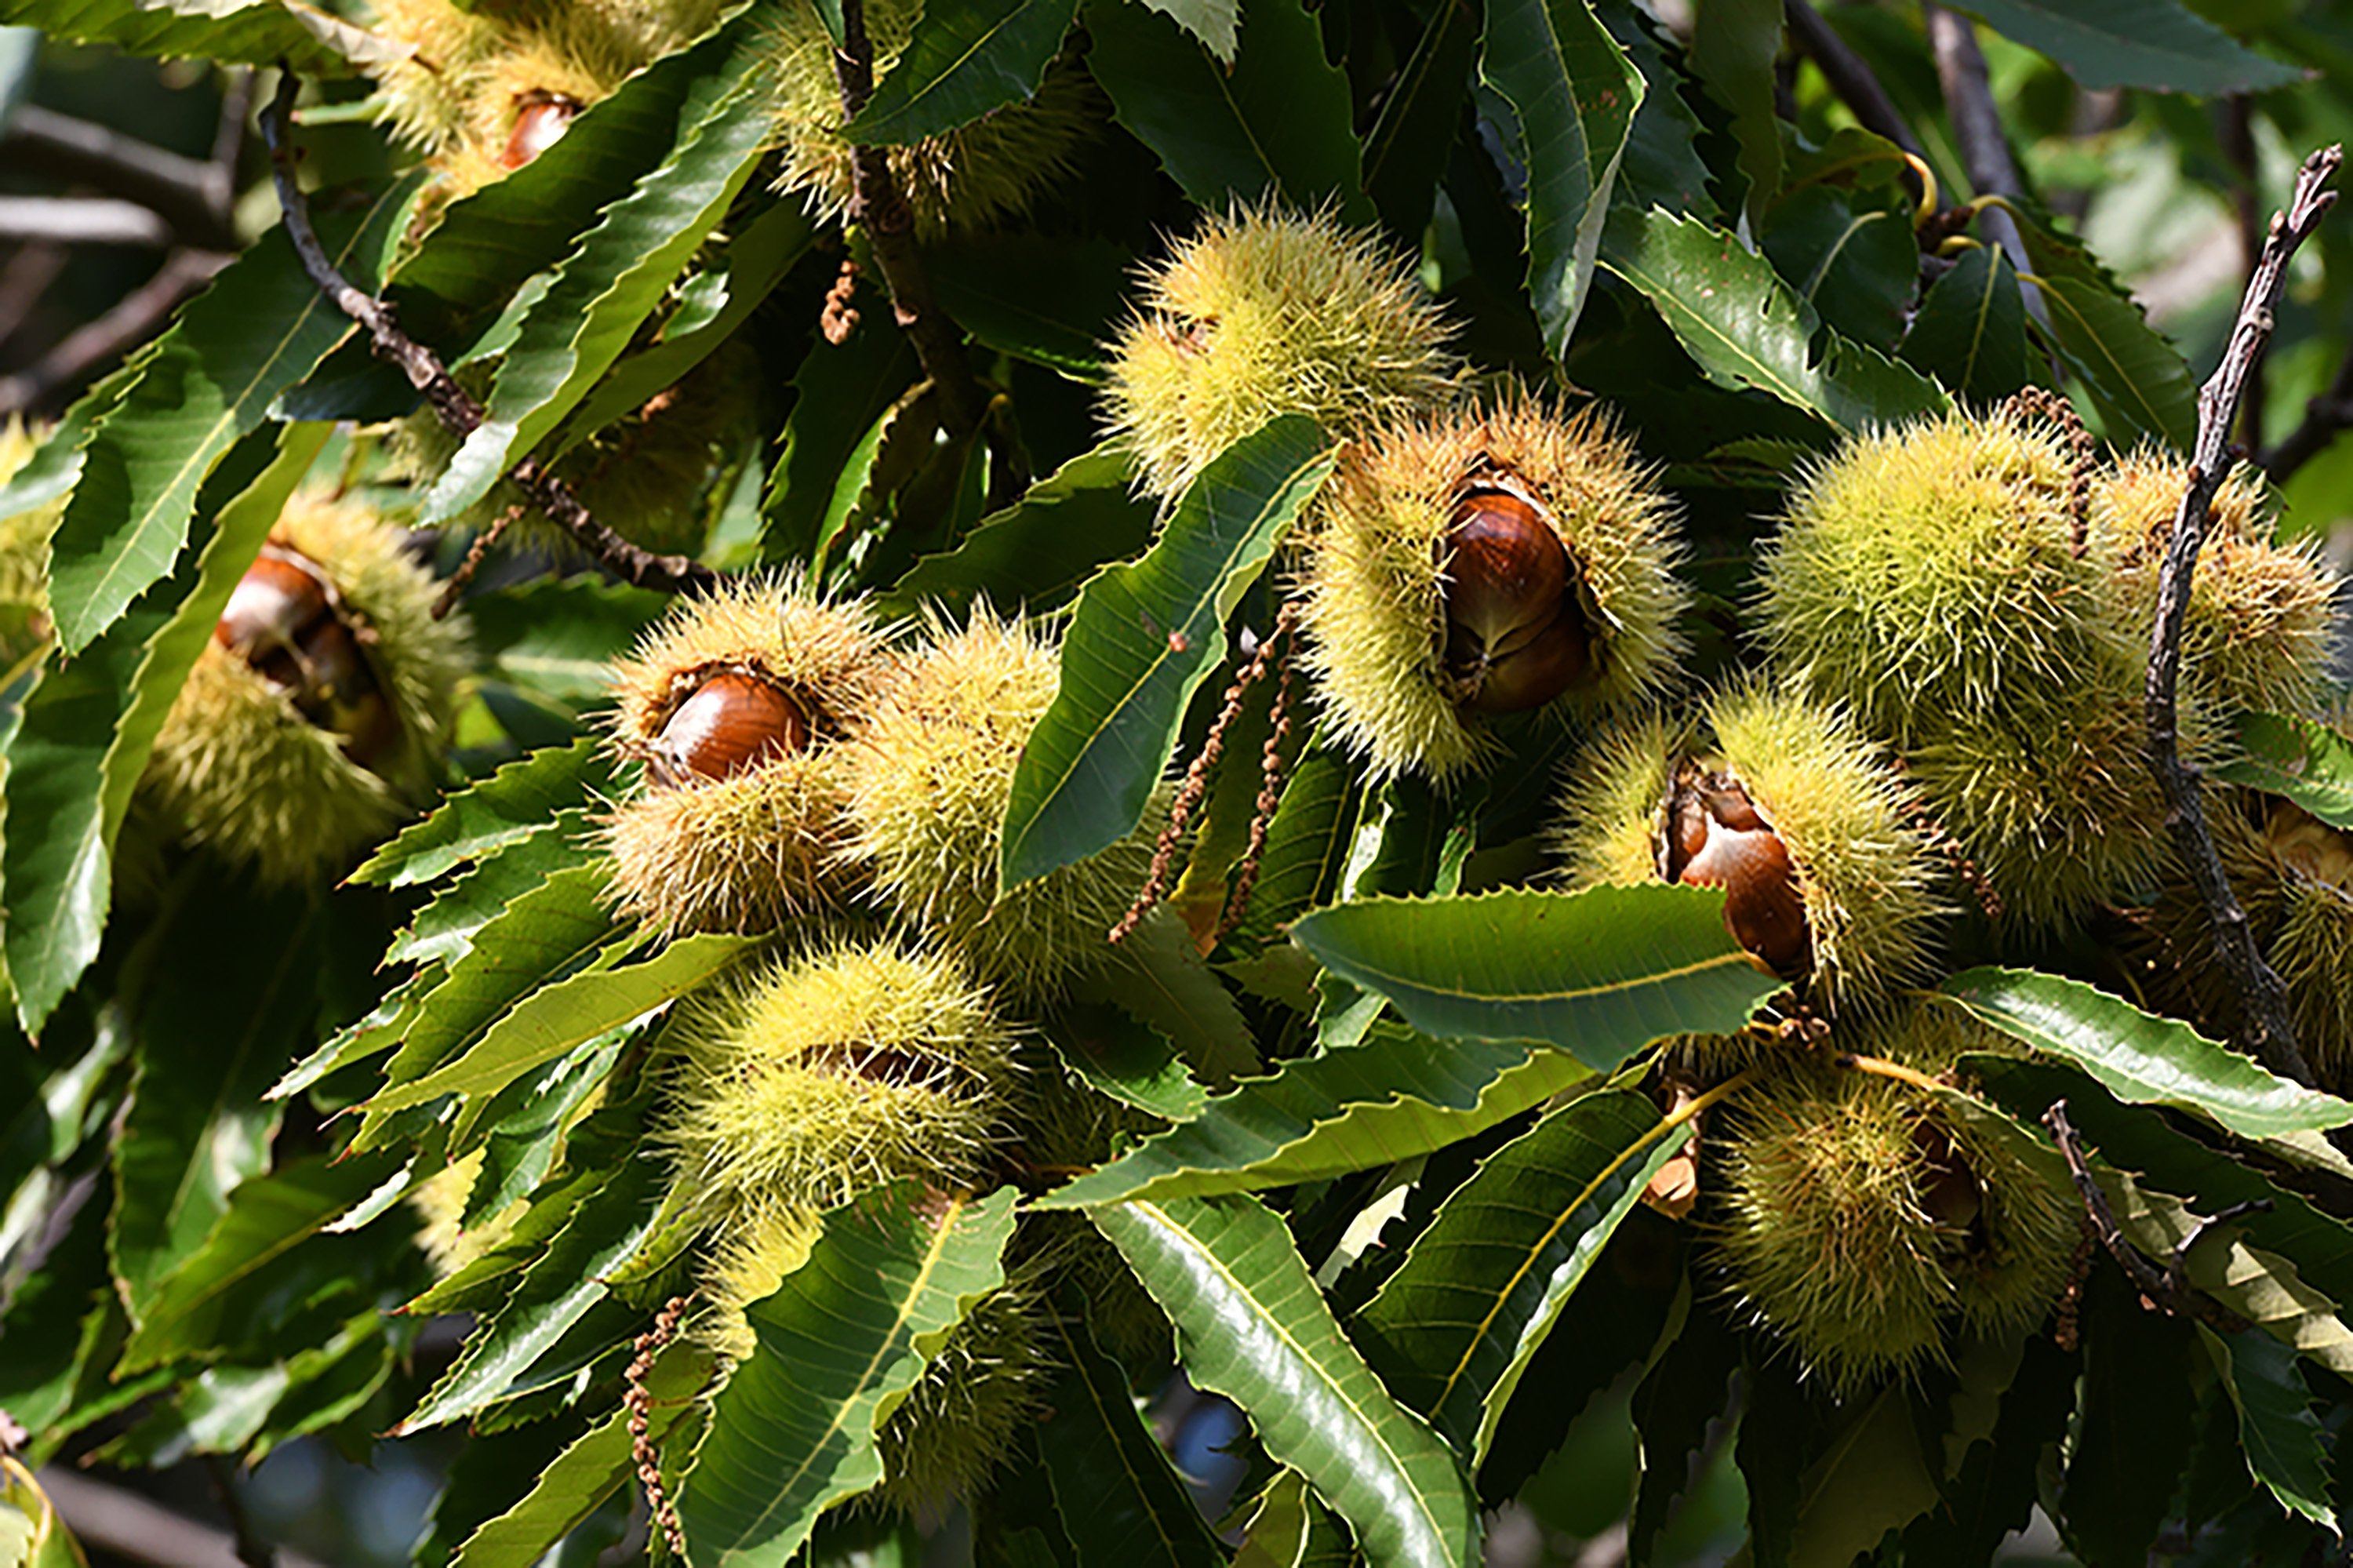 Chestnuts are covered in spiny husks called burrs. (Shutterstock Photo)